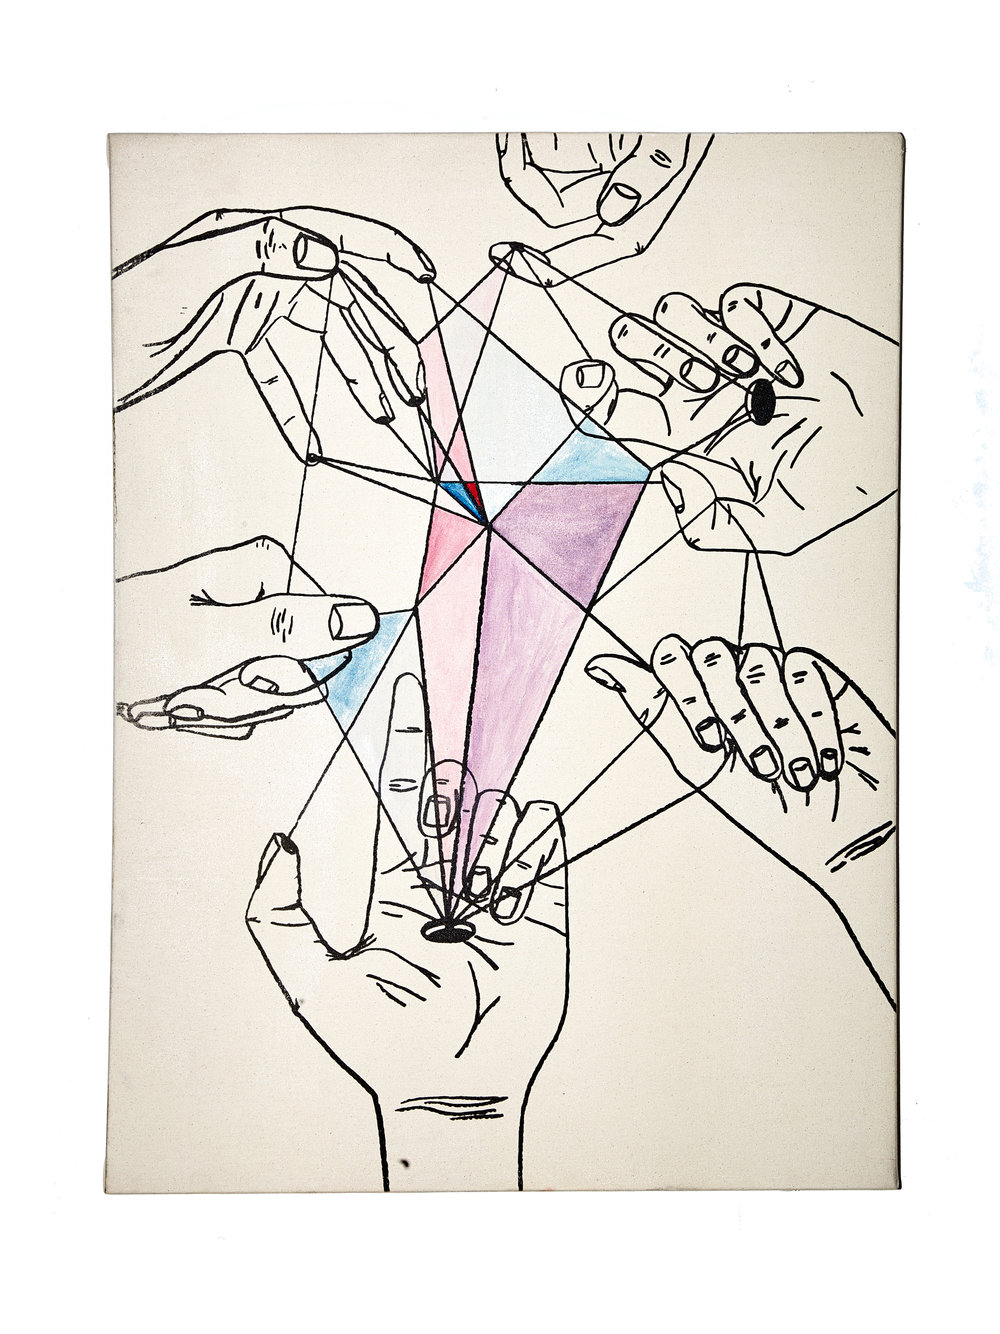 """Bravo Hands   24"""" x 36""""  Created at the edge of the world on the Island of Siargao sipping Pomadas at Bravo  The 6.1 earthquake and Tsunami Sirens made me think this was the last piece id ever make  Liquid Light, Pencil, Charcoal, Watercolor"""